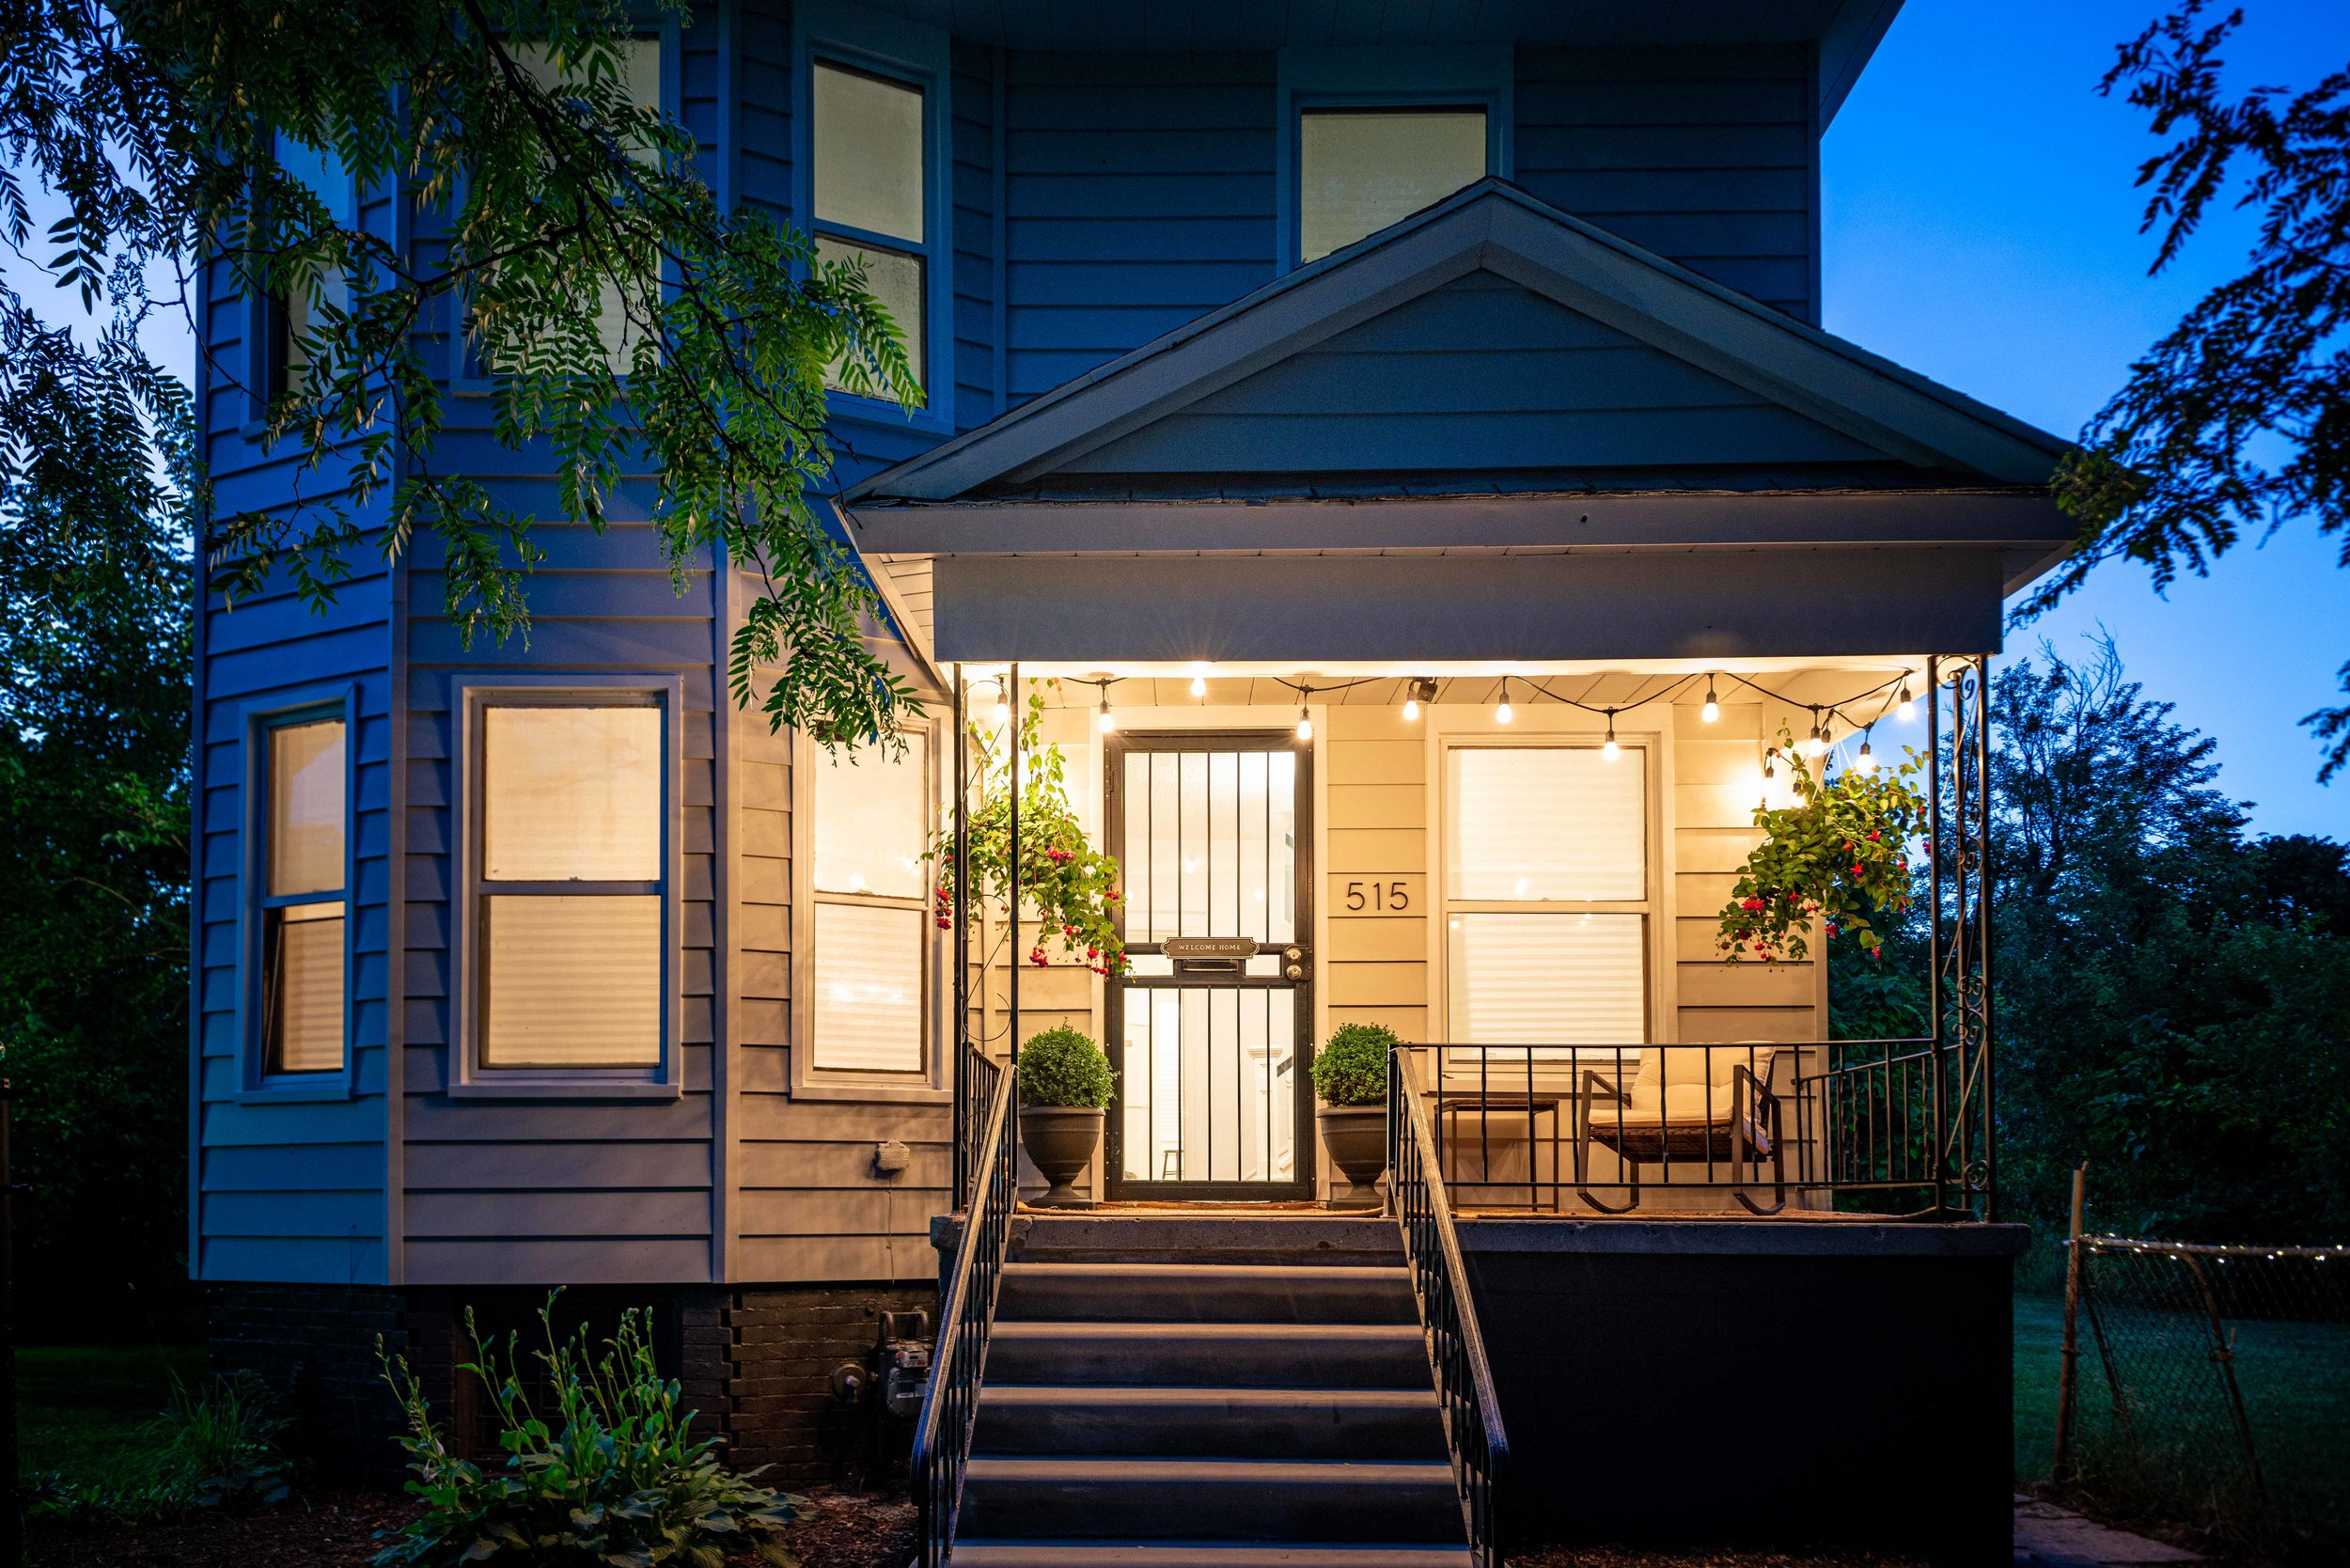 A home with white vinyl siding at dusk. The front porch is lit with strung Edison bulbs.